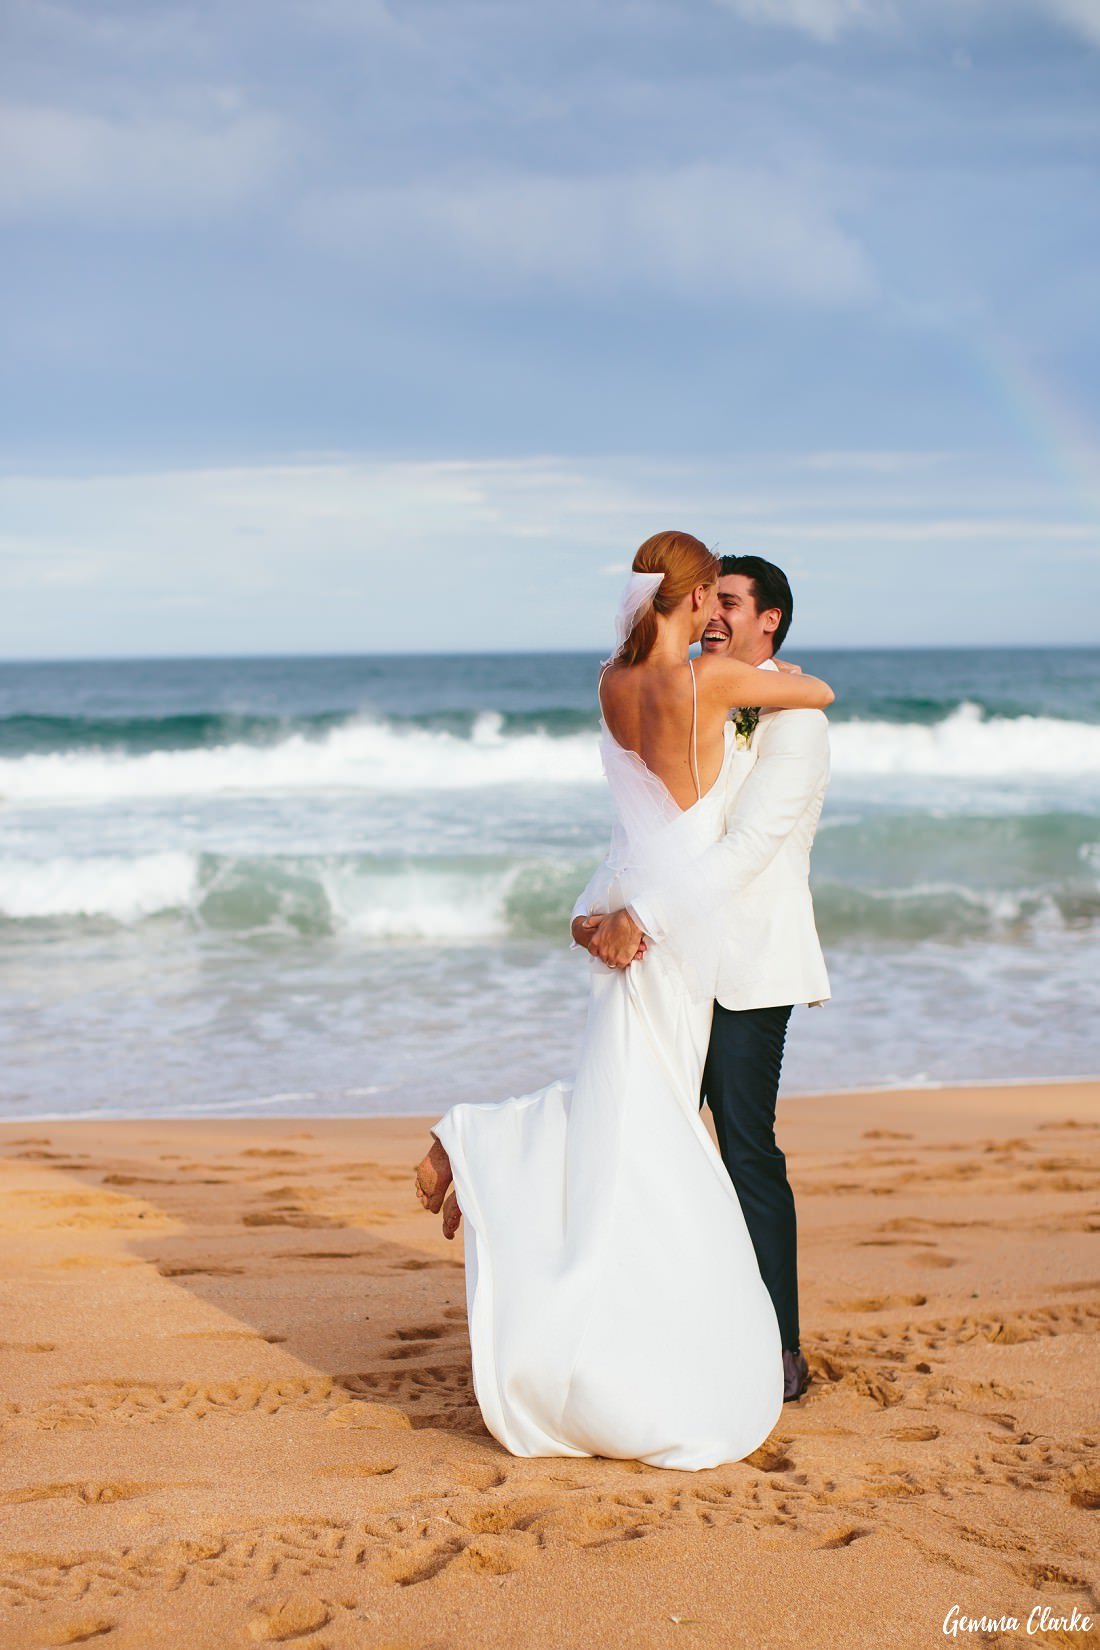 Bride is picked up by the groom and they embrace on the beach with a fading rainbow in the distance at this Whale Beach Wedding